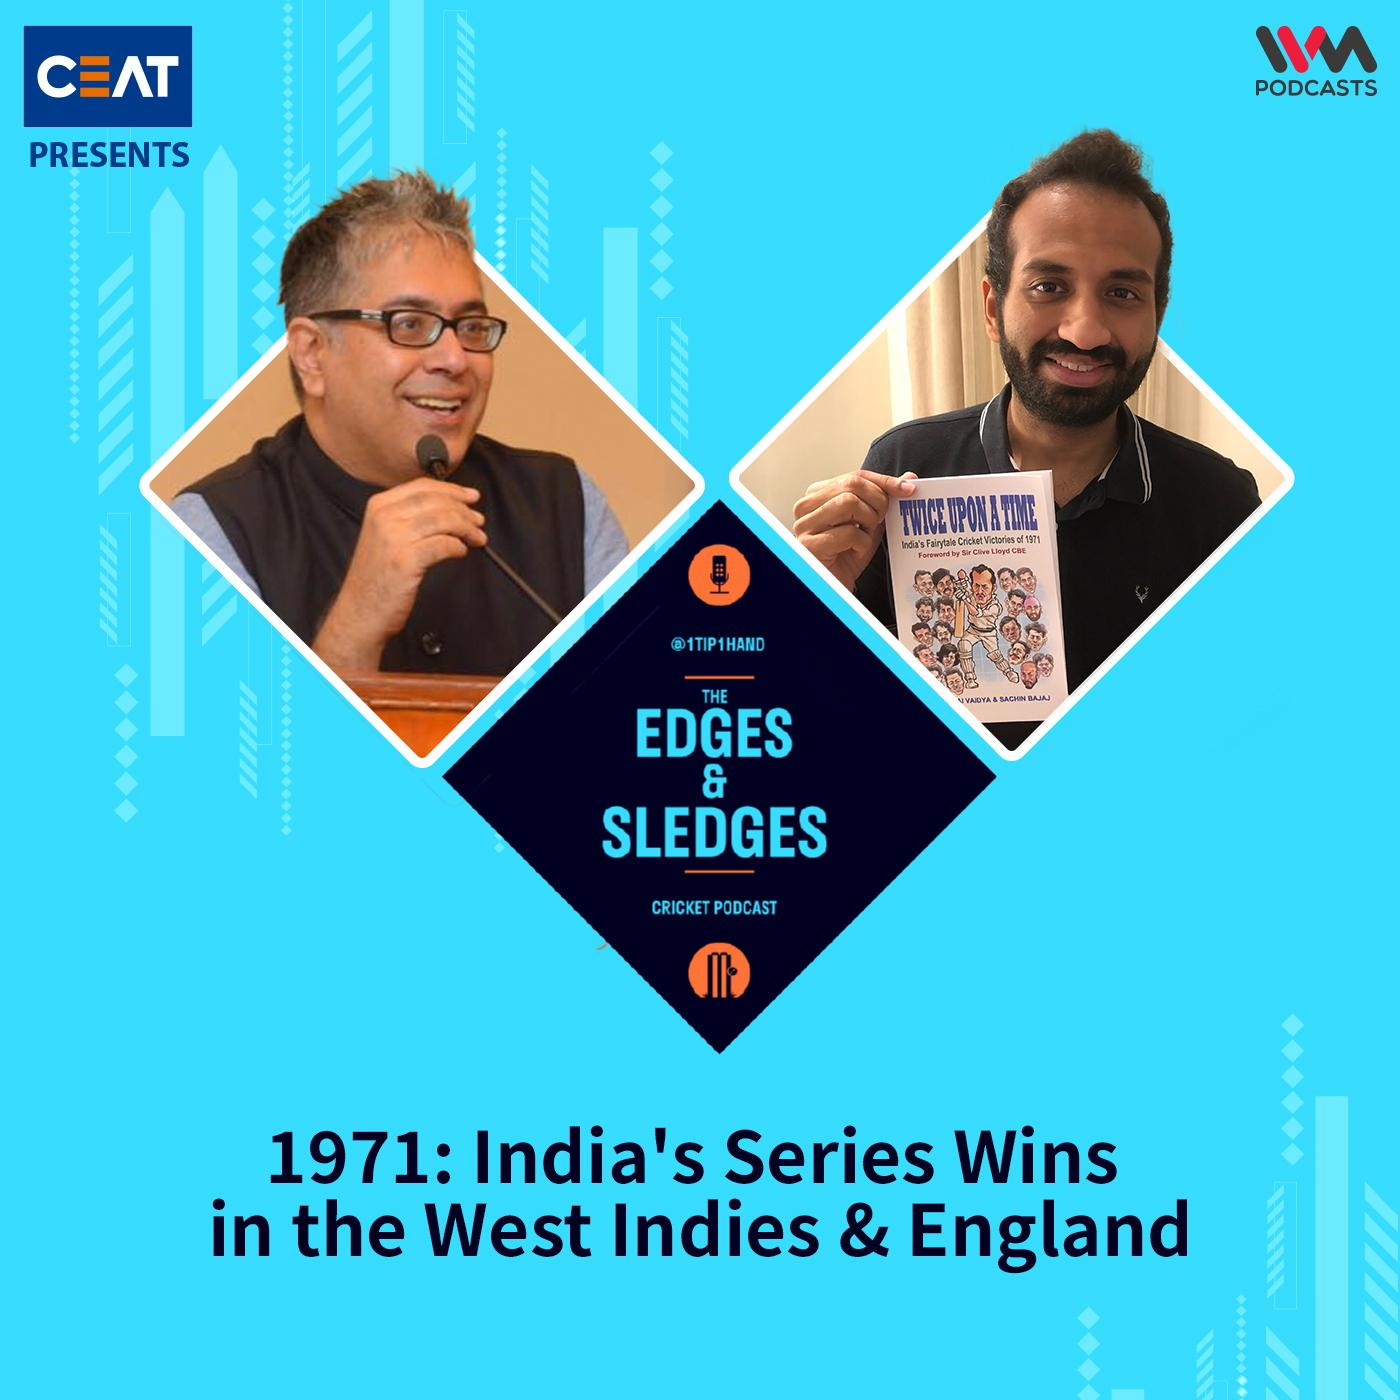 Ep. 178: 1971: India's Series Wins in the West Indies & England